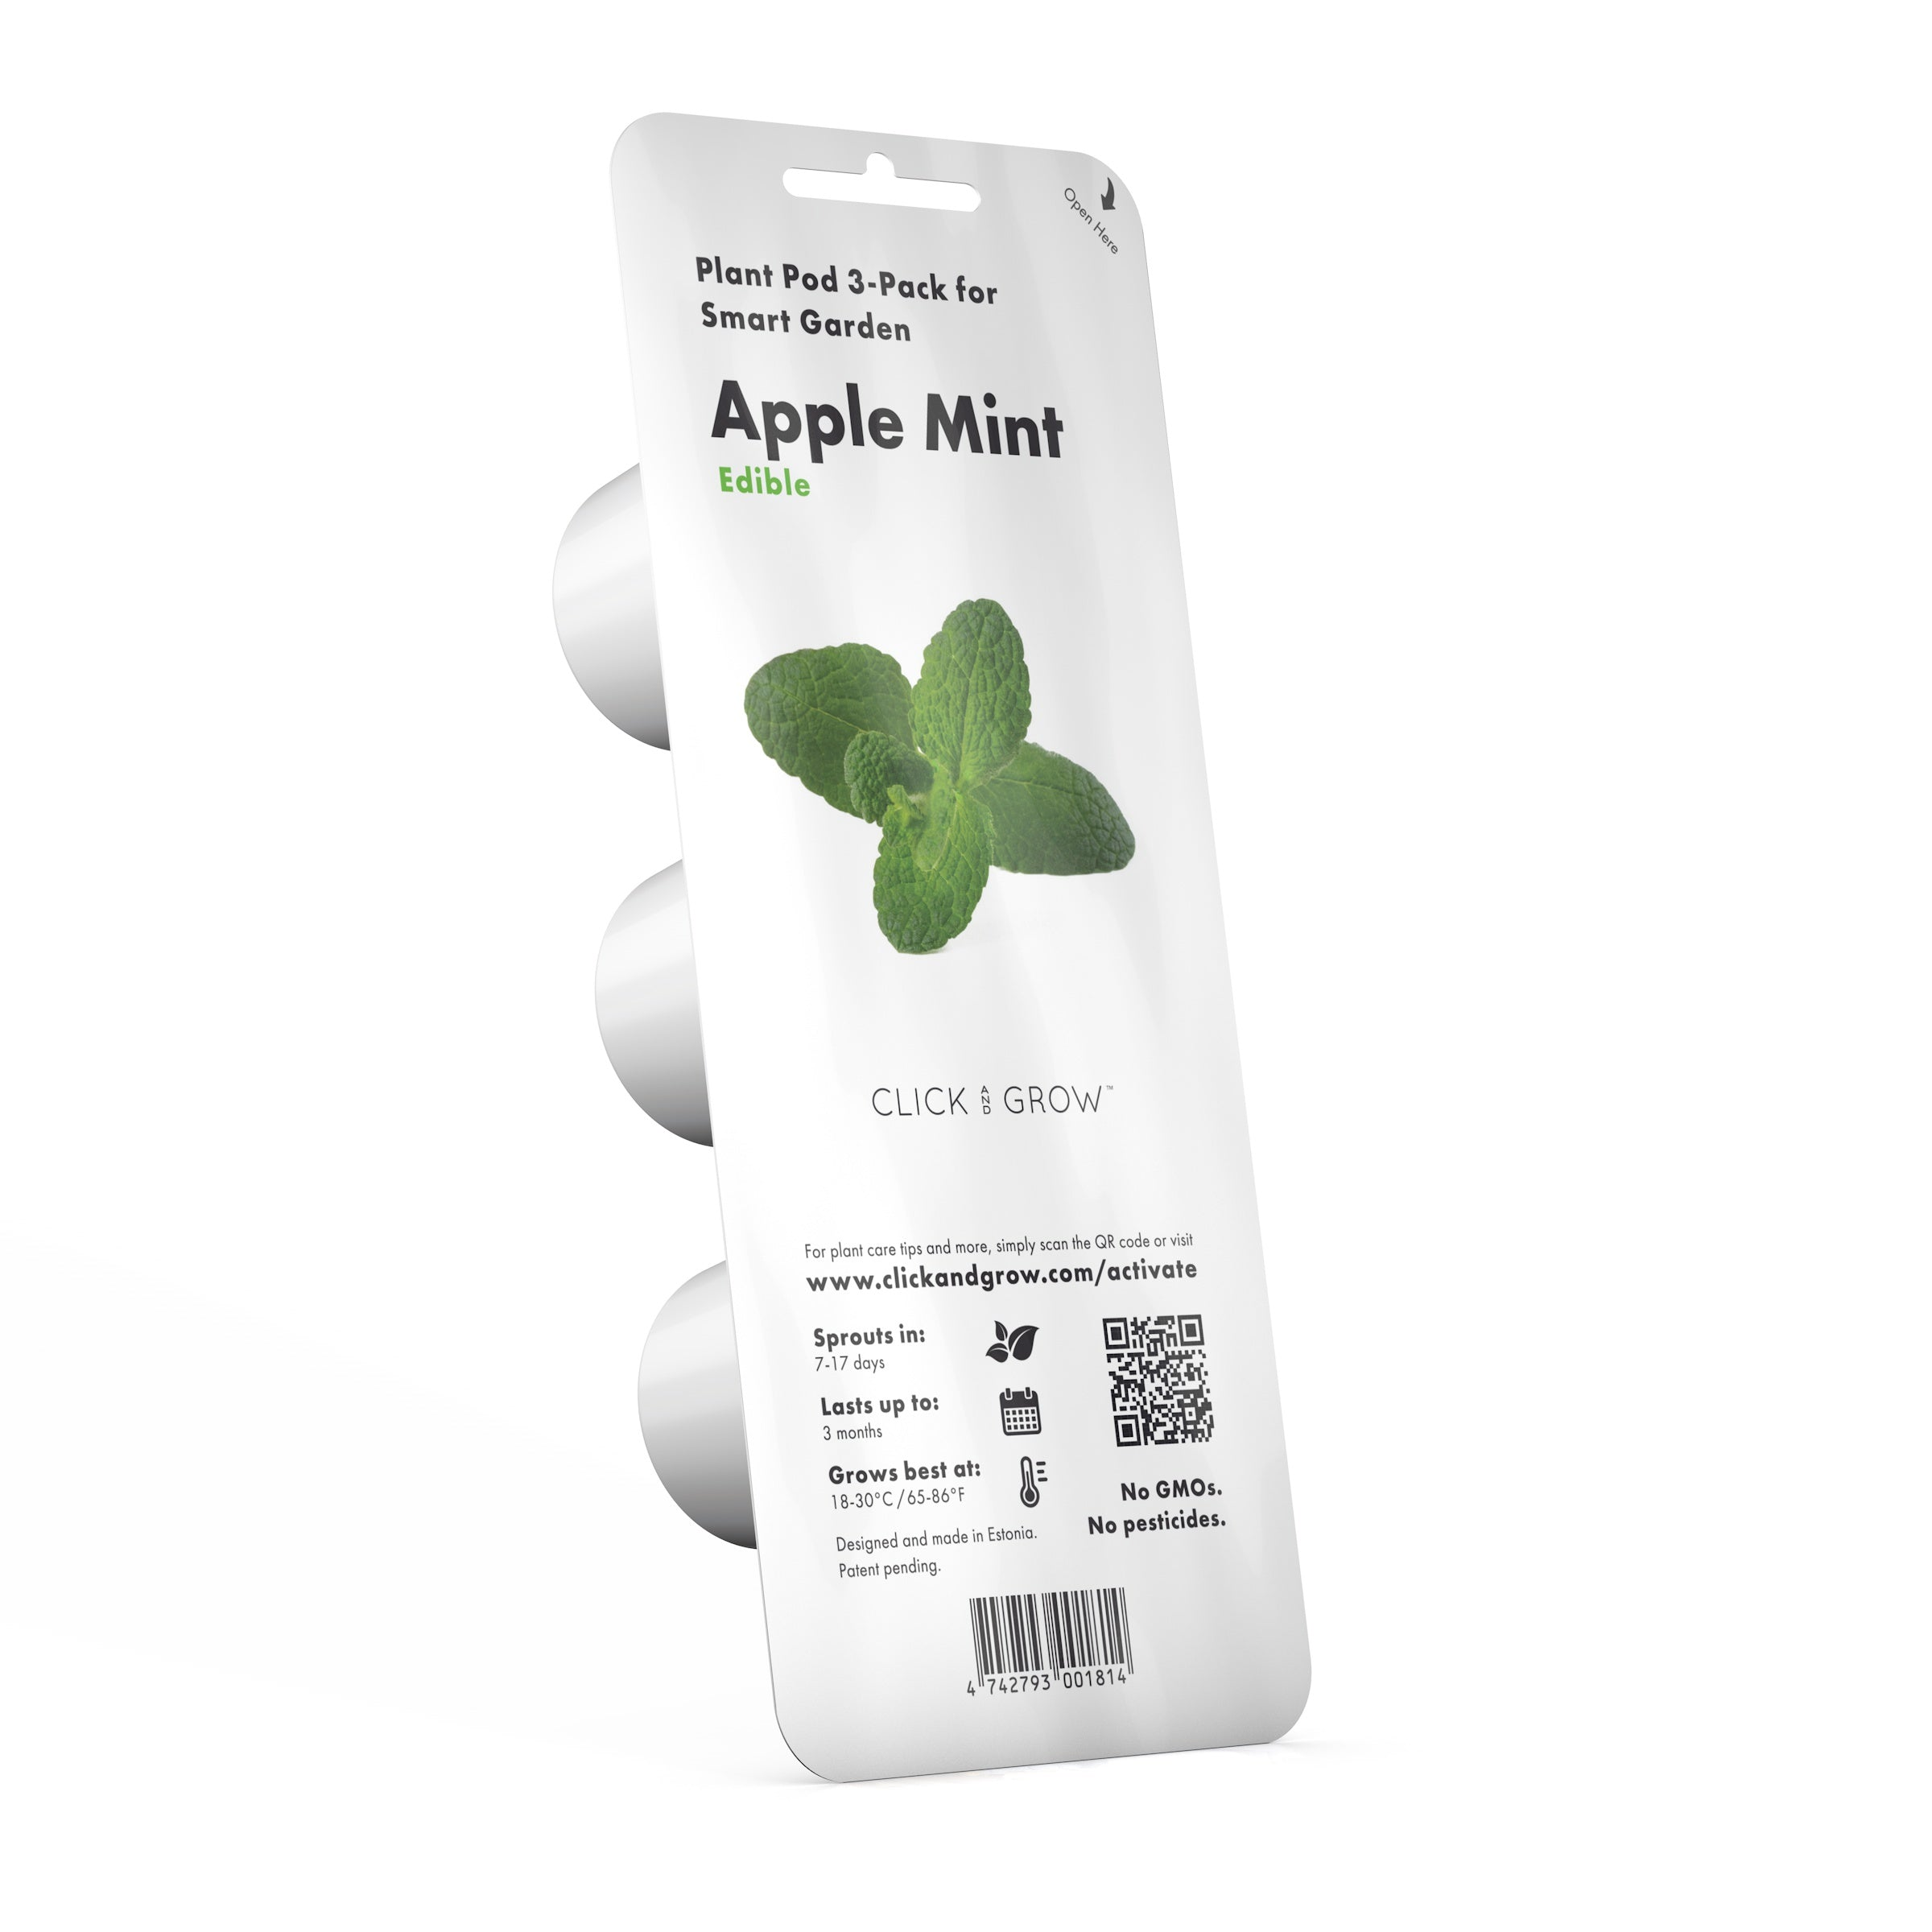 Apple Mint Plant Pods